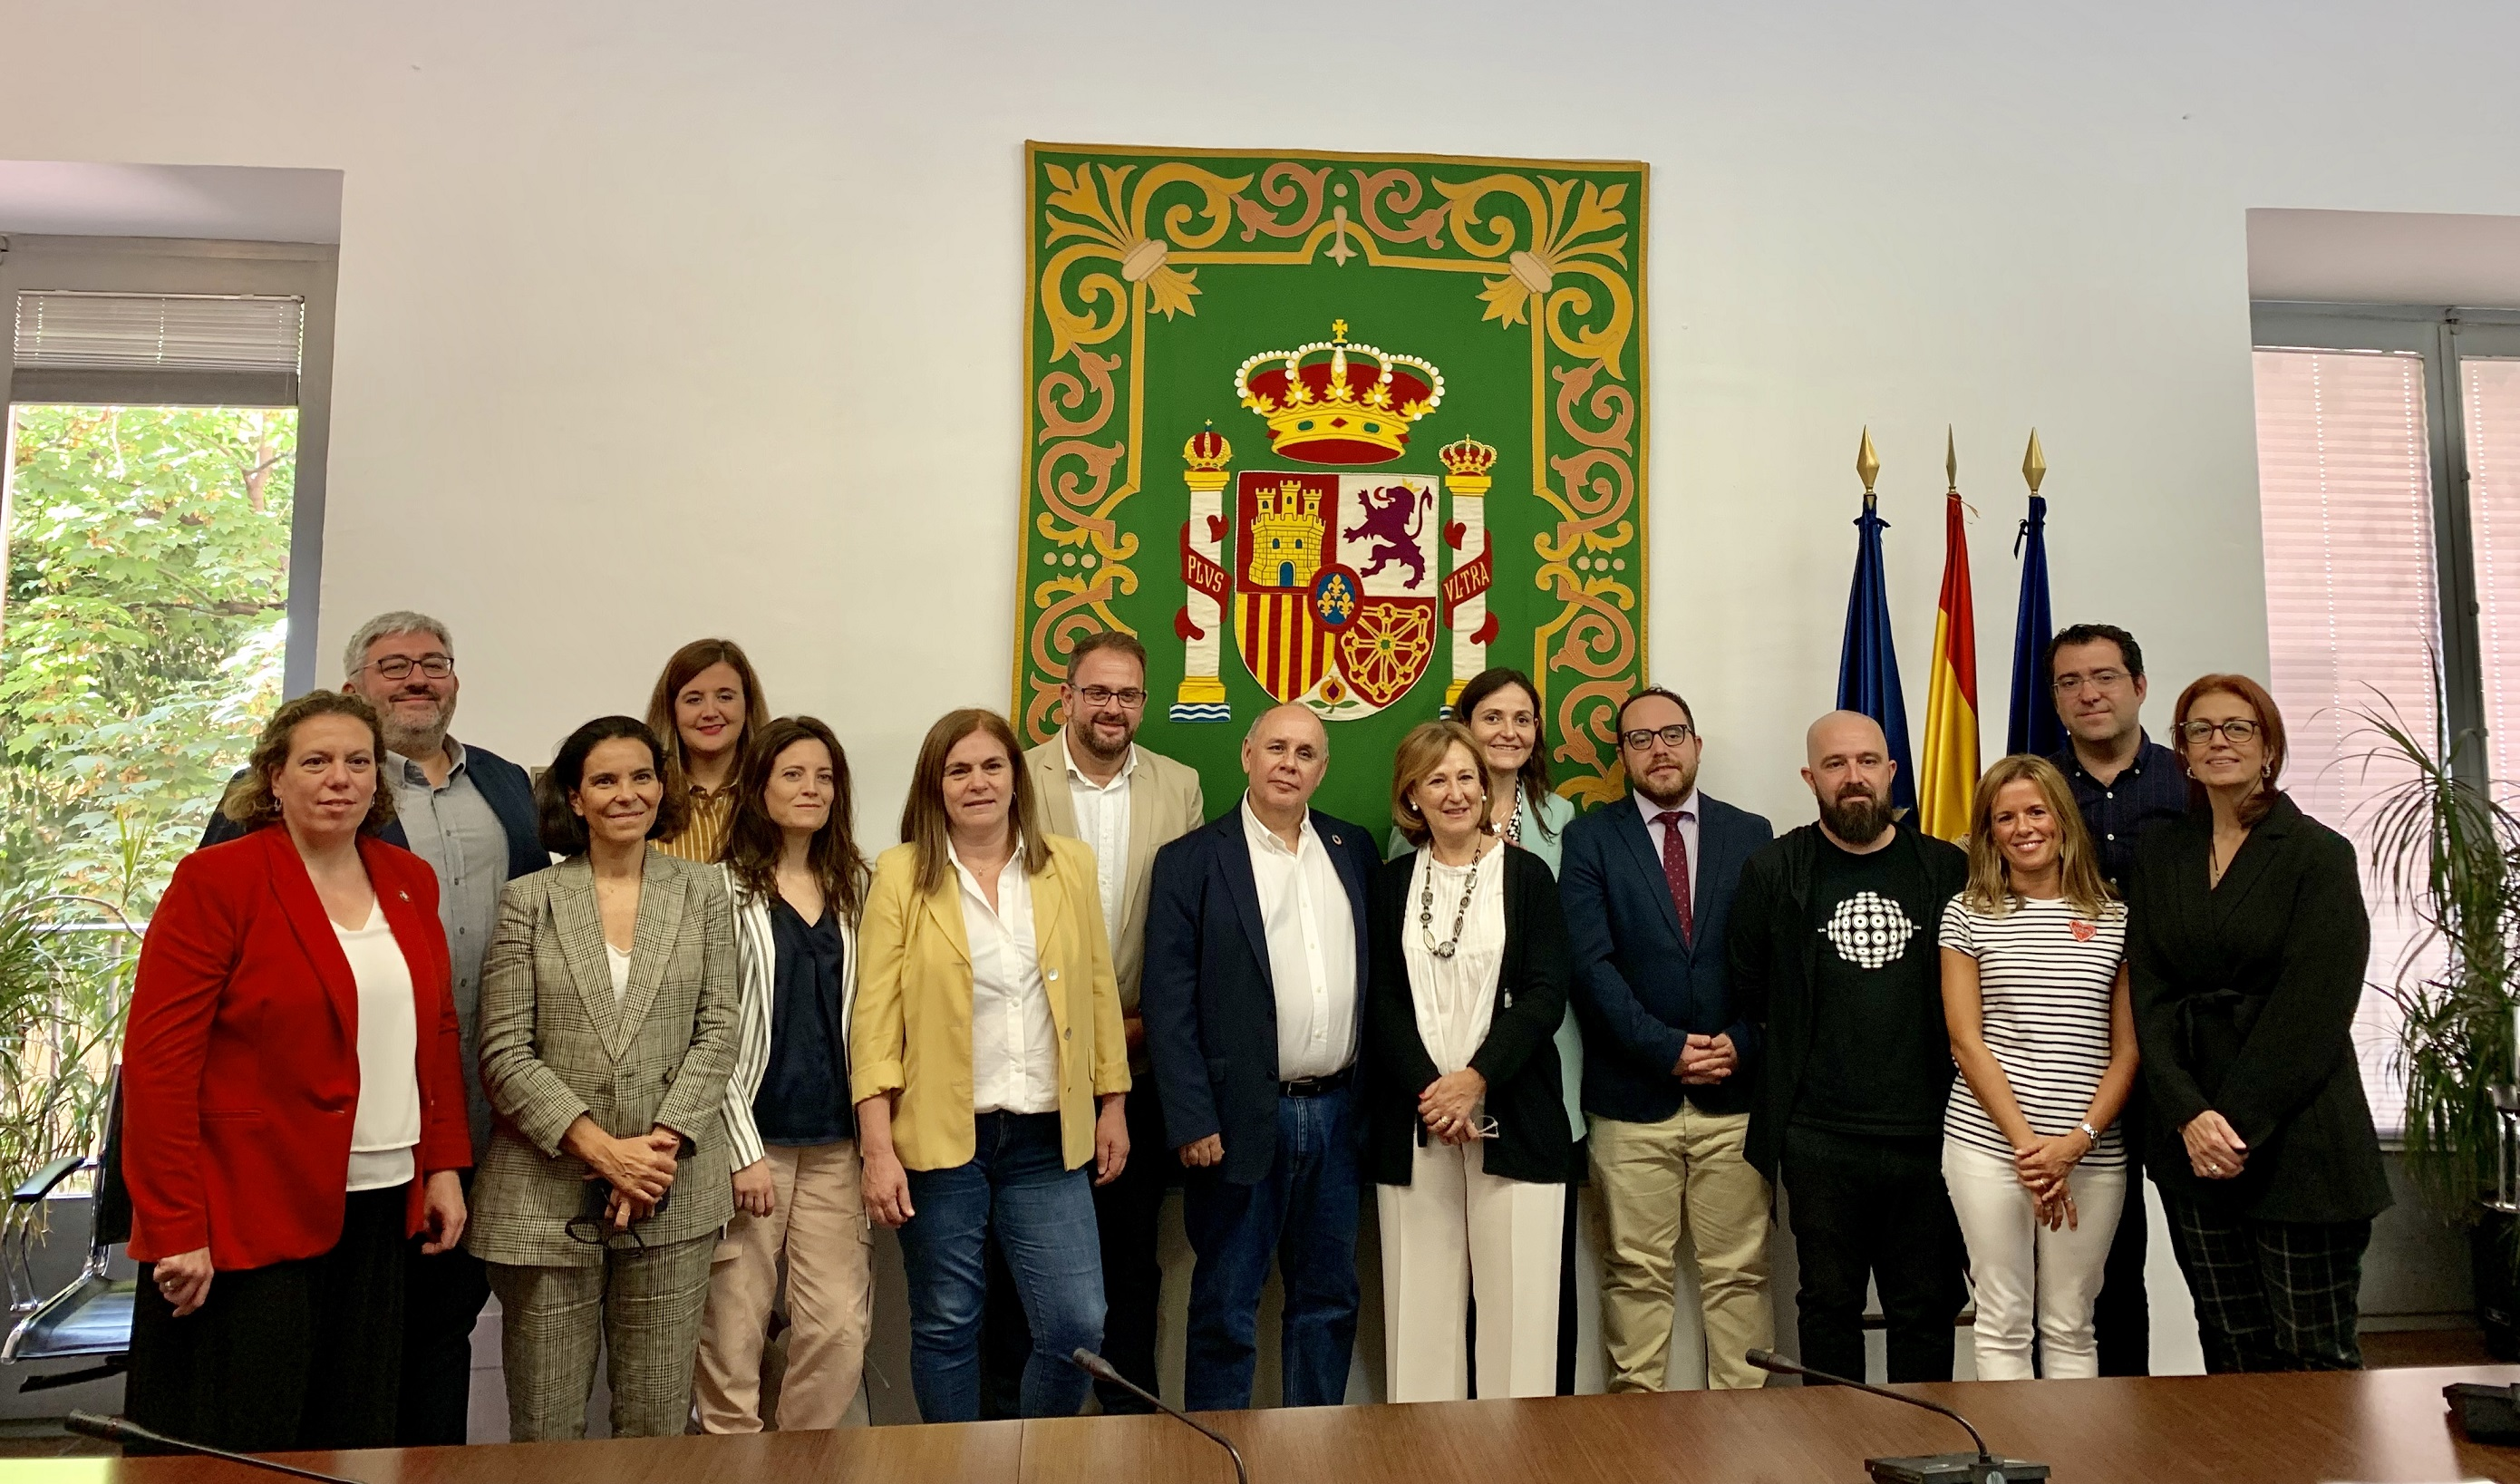 Os/as integrantes da Comisión de Patrimonio do GCPHE.